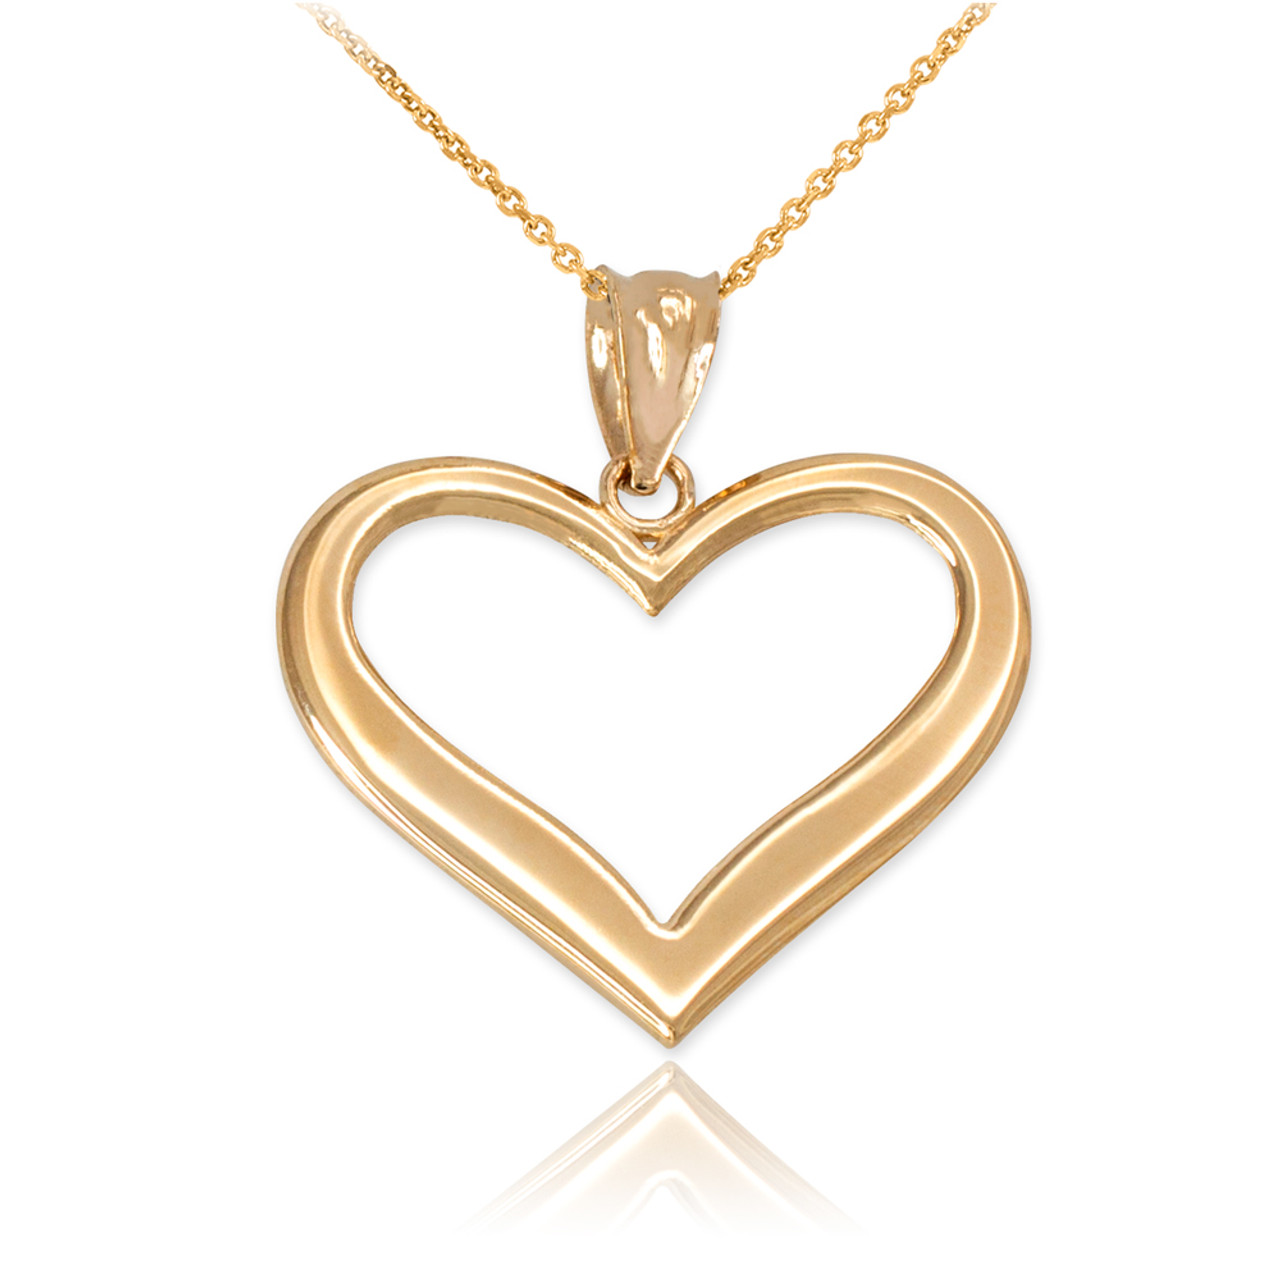 4579eb1dad21f Yellow Gold Polished Open Heart Pendant Necklace